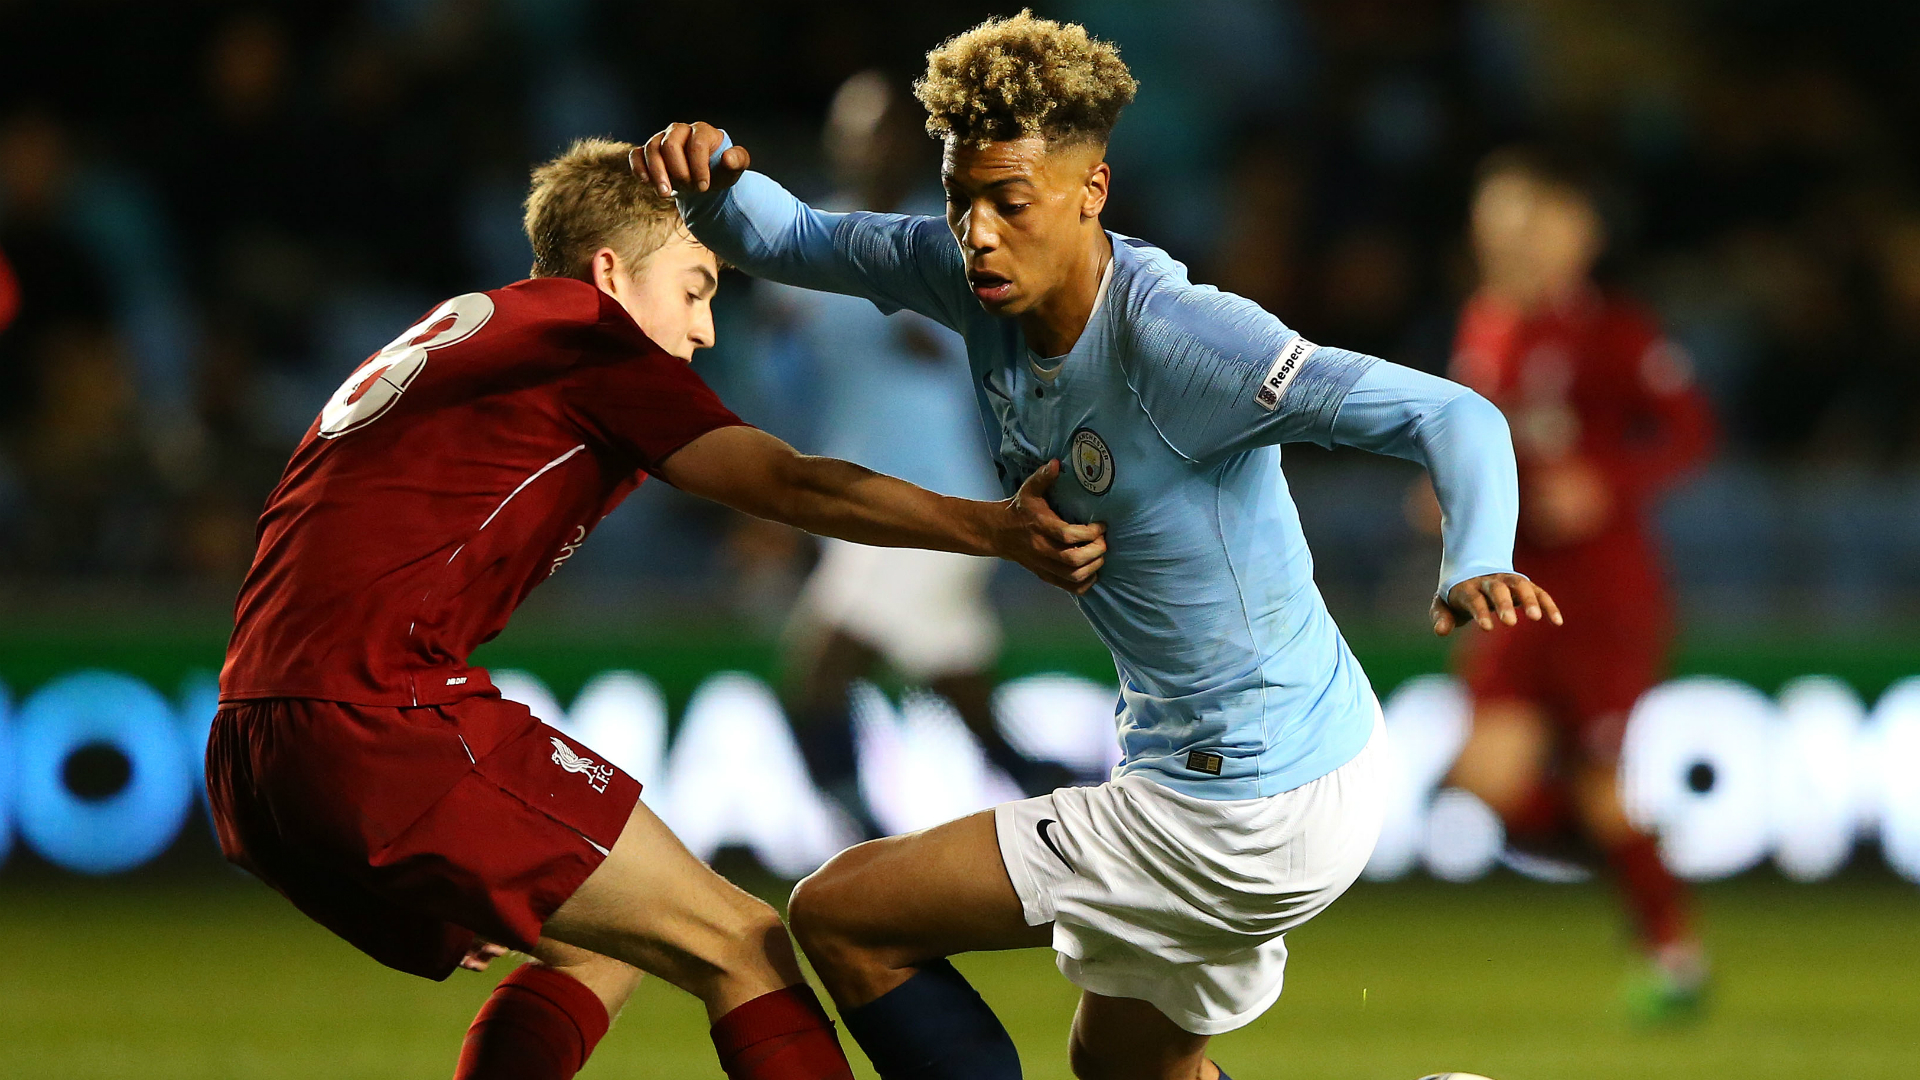 Liverpool beat Manchester City on penalties in FA Youth Cup final